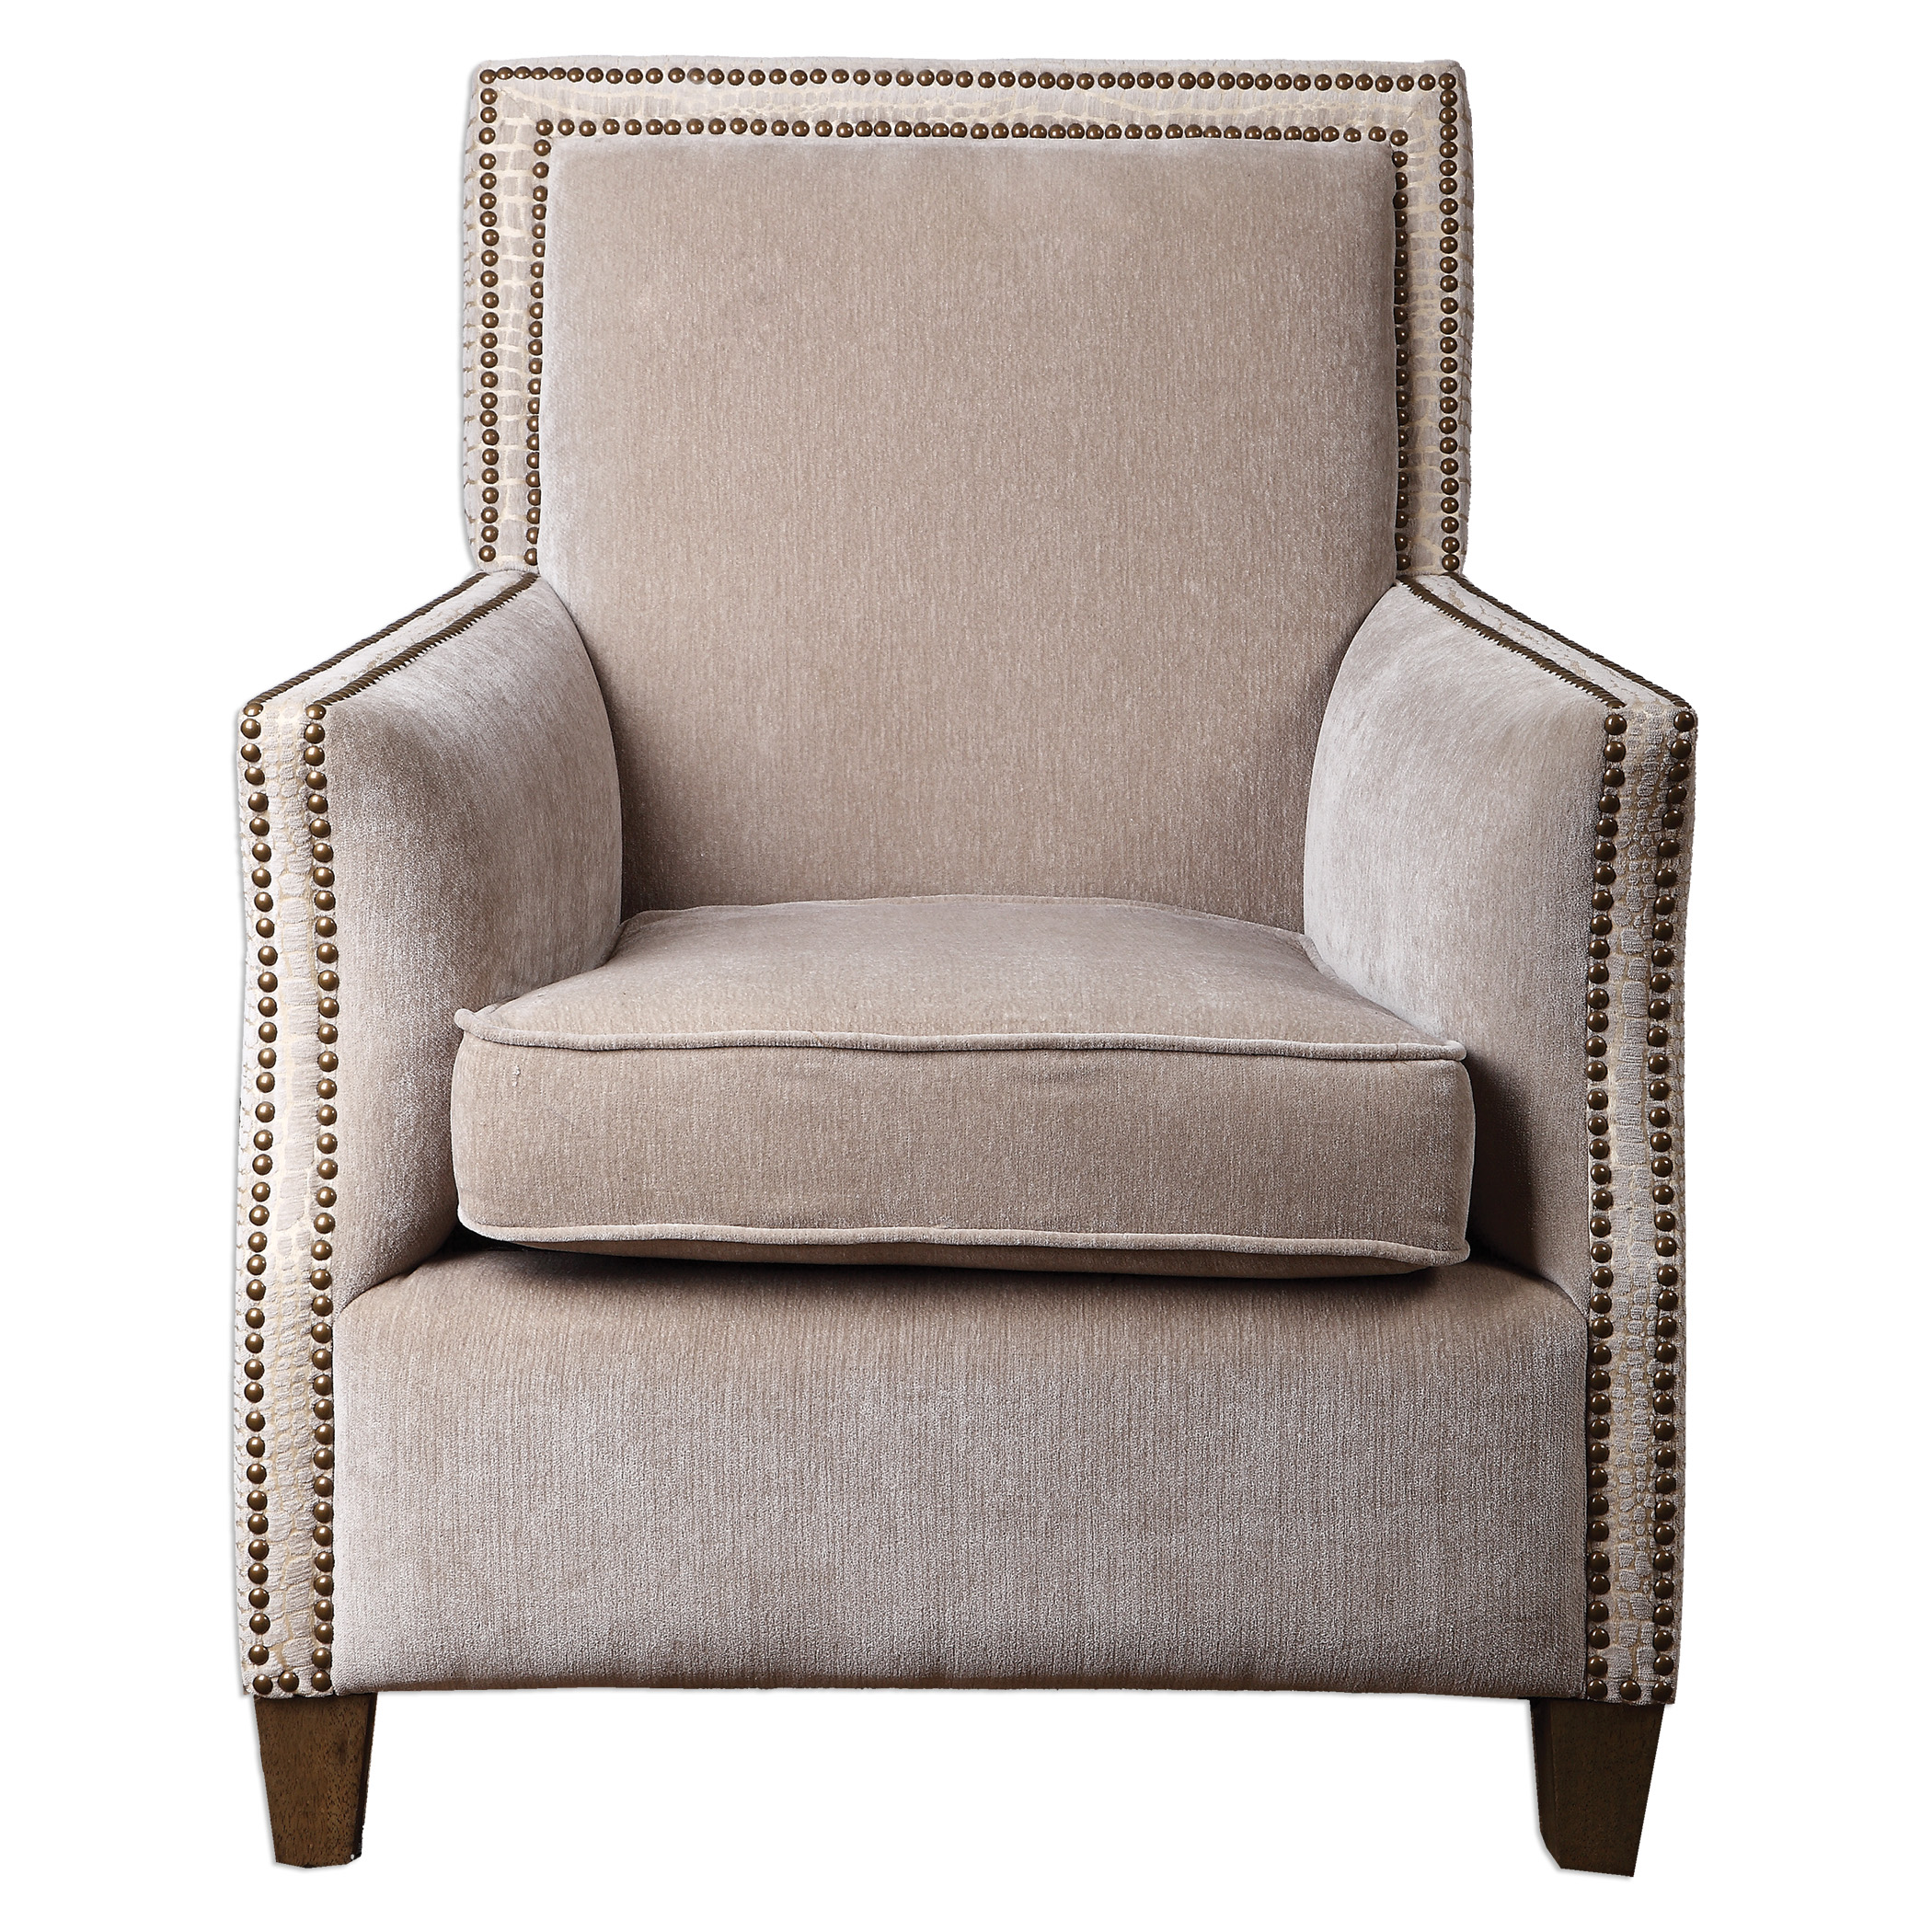 Uttermost Accent Furniture Darick Oatmeal Armchair - Item Number: 23275